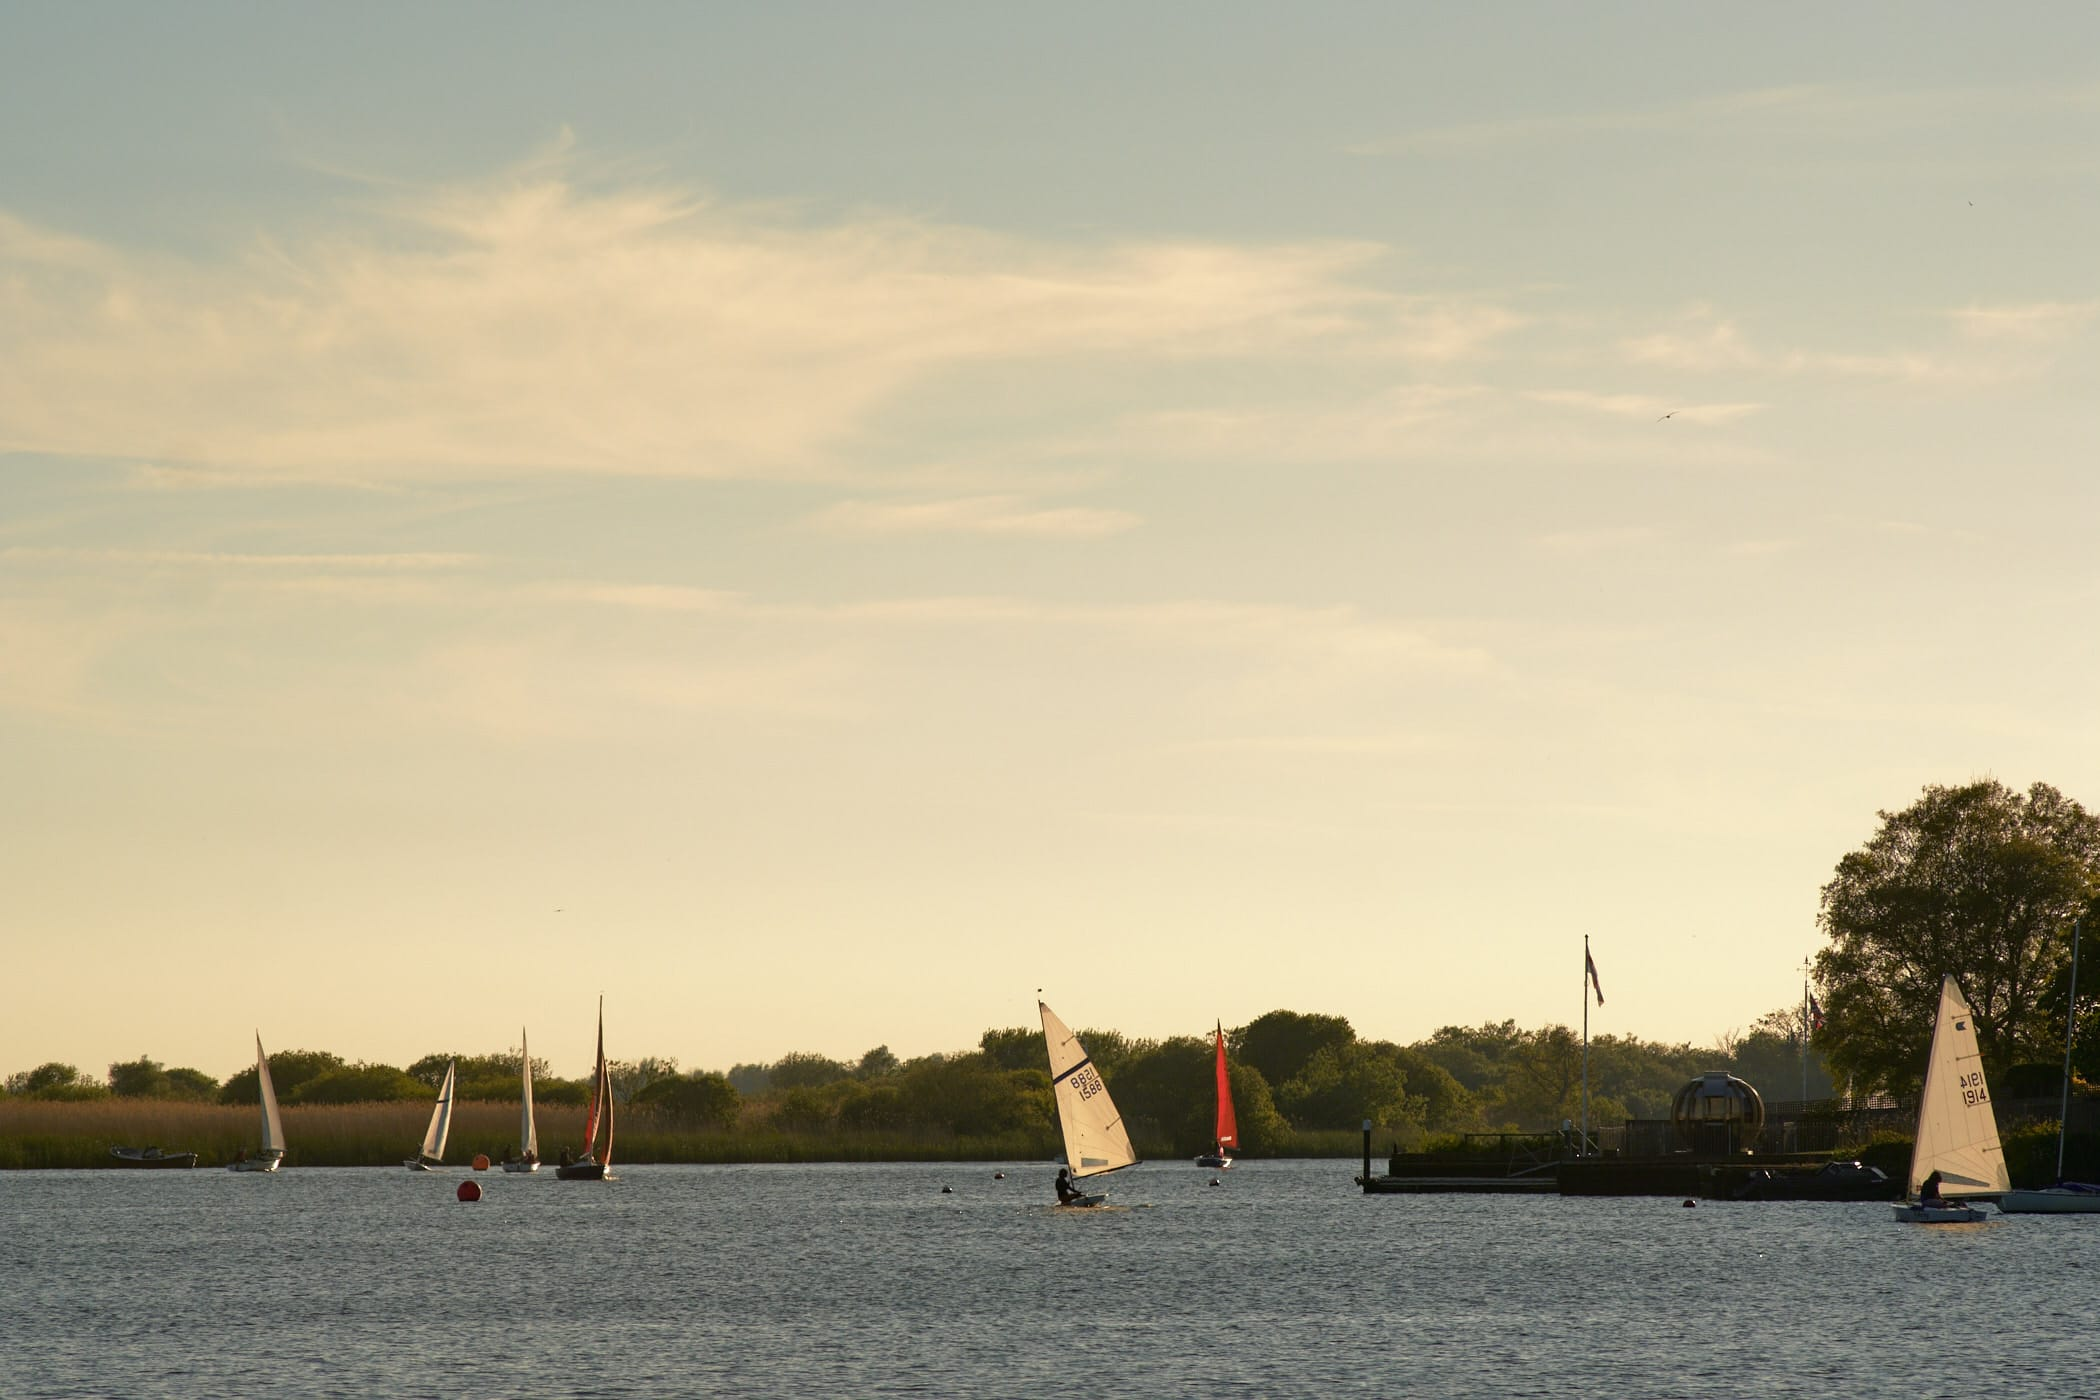 sailing dinghies on Oulton Broad